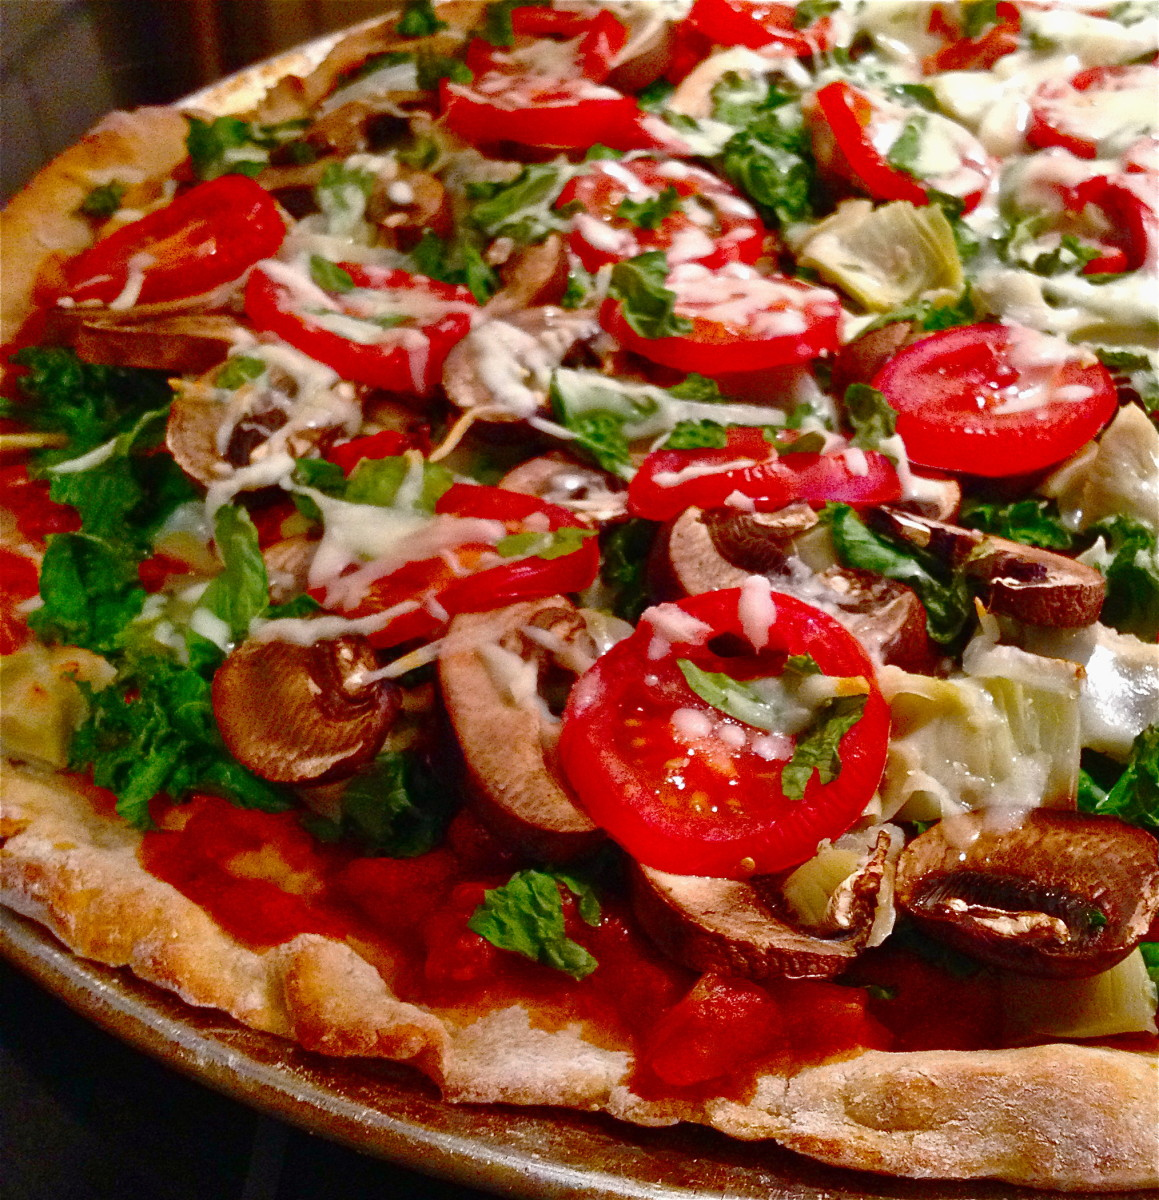 Creating a Pizza With Whole Wheat Crust, Sauce, & 15 Veggie Toppings